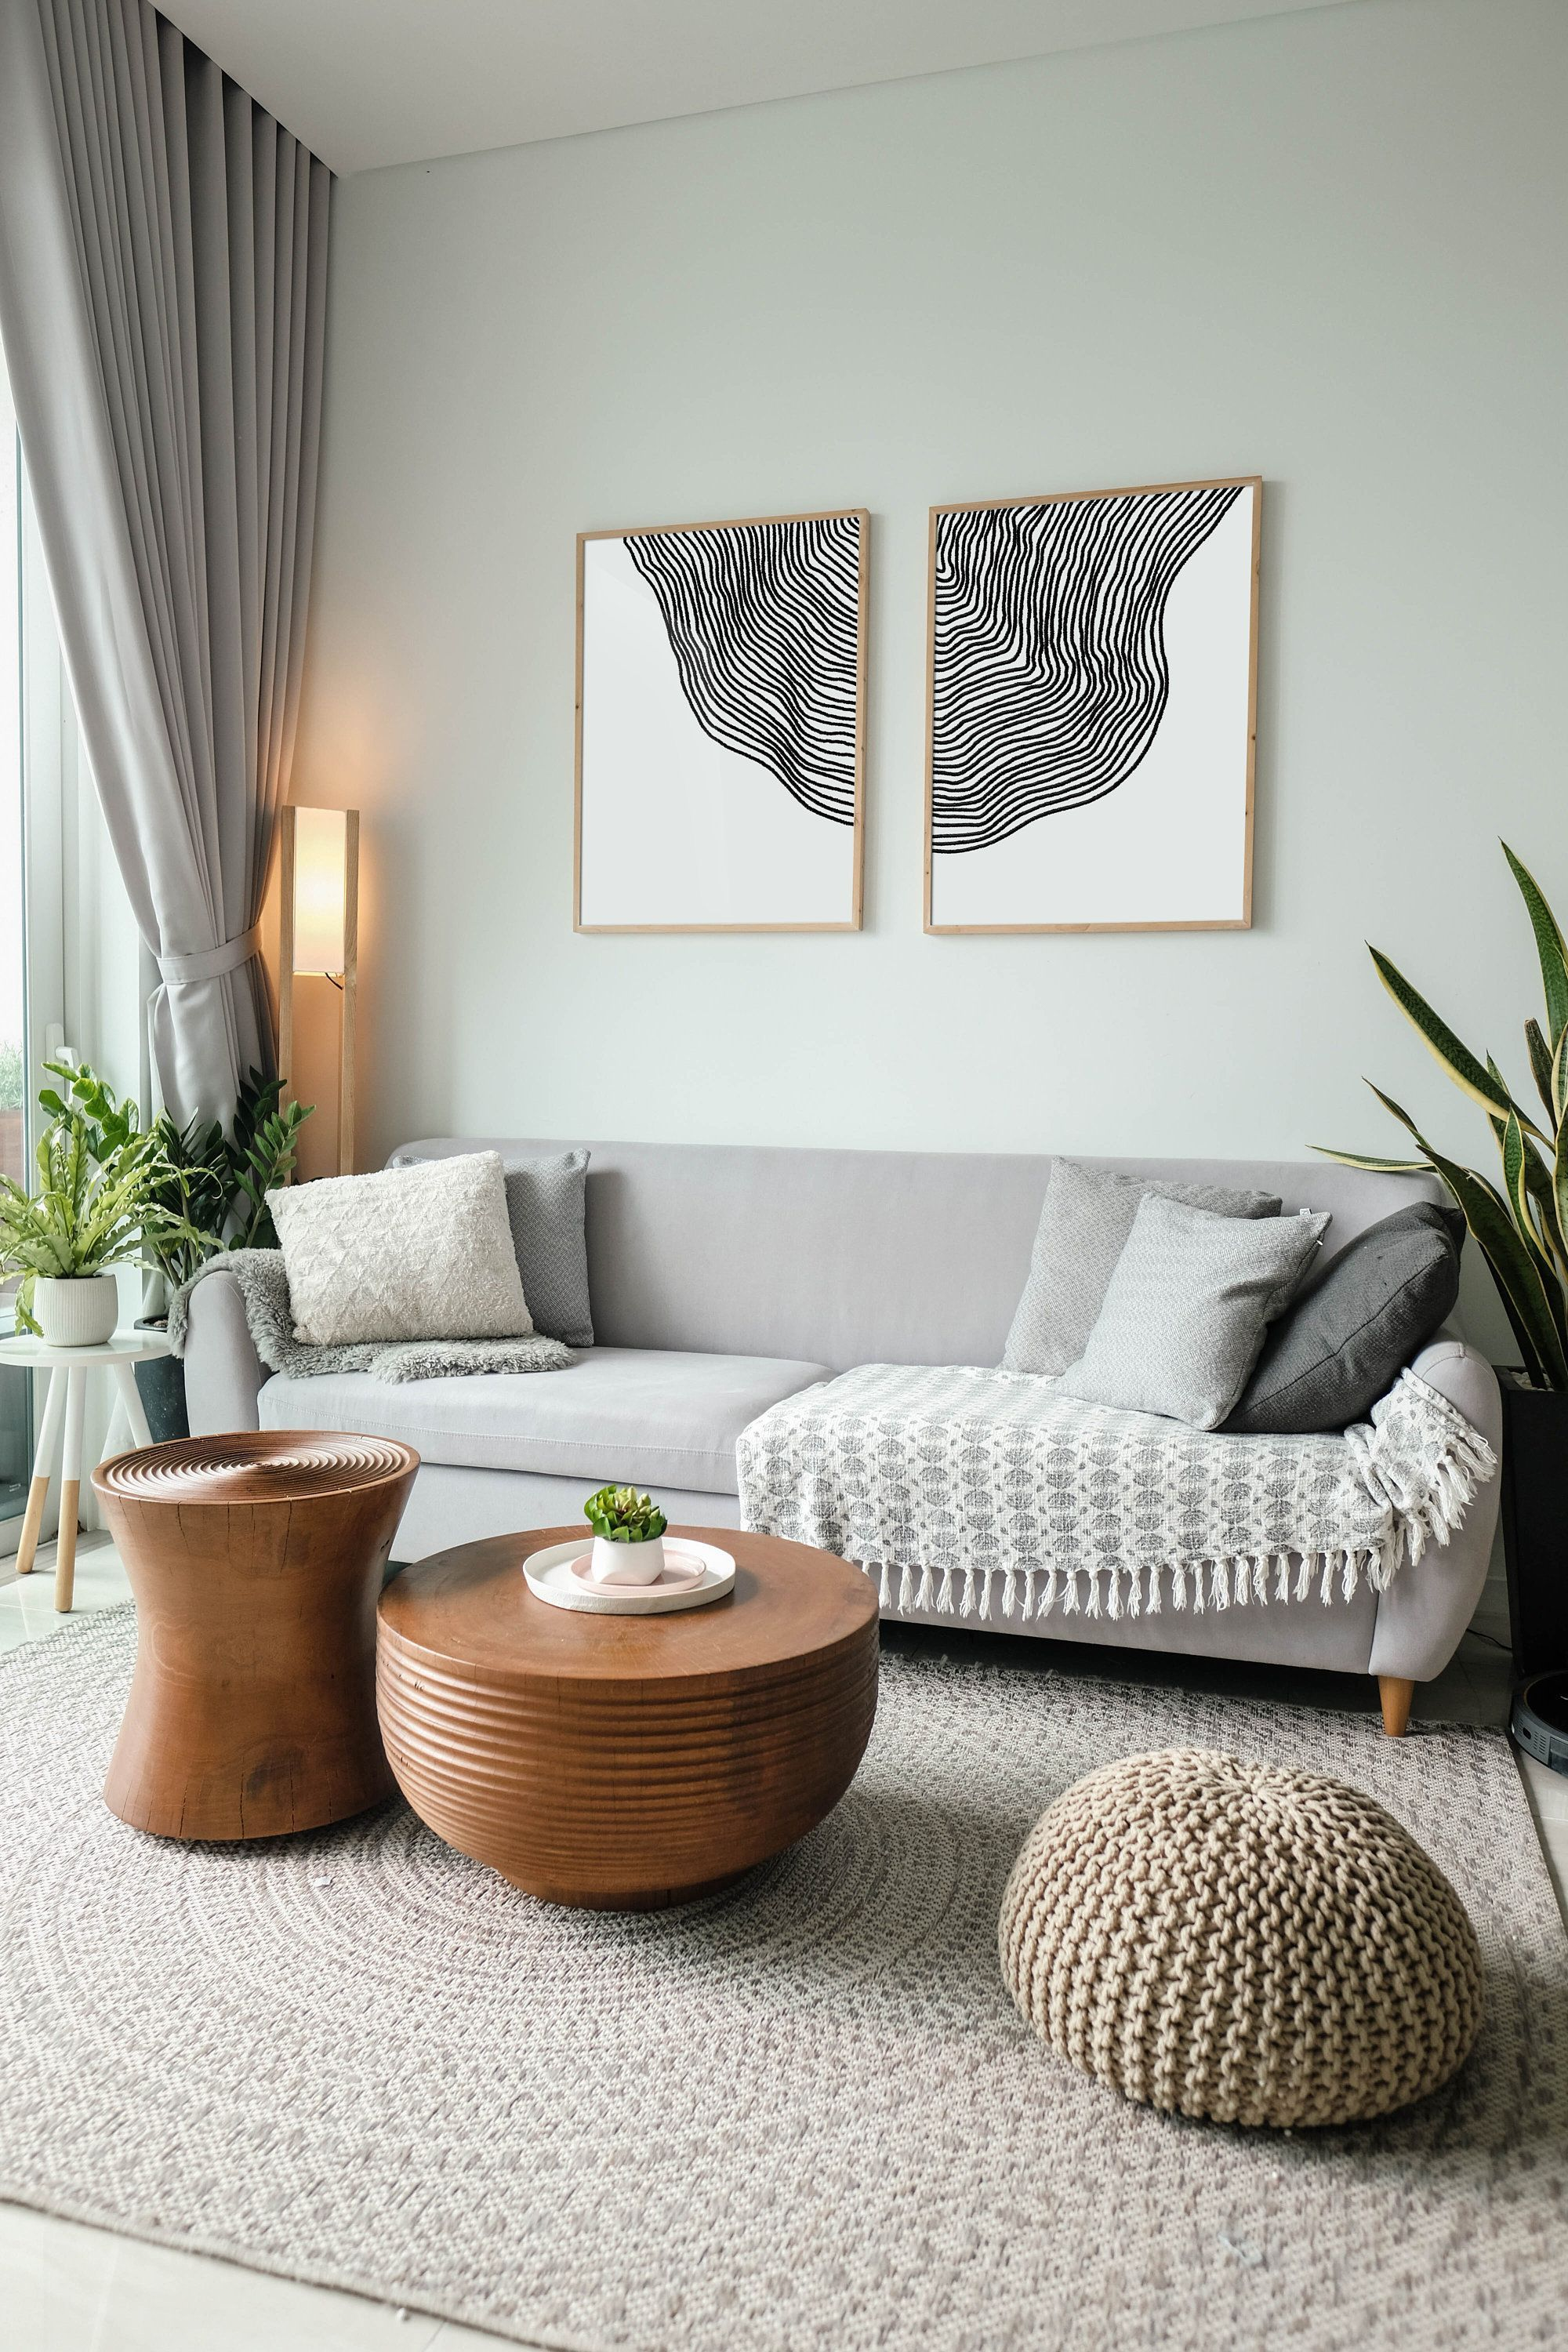 CONTEMPORARY LIVING ROOM WITH TIMELESS PIECES